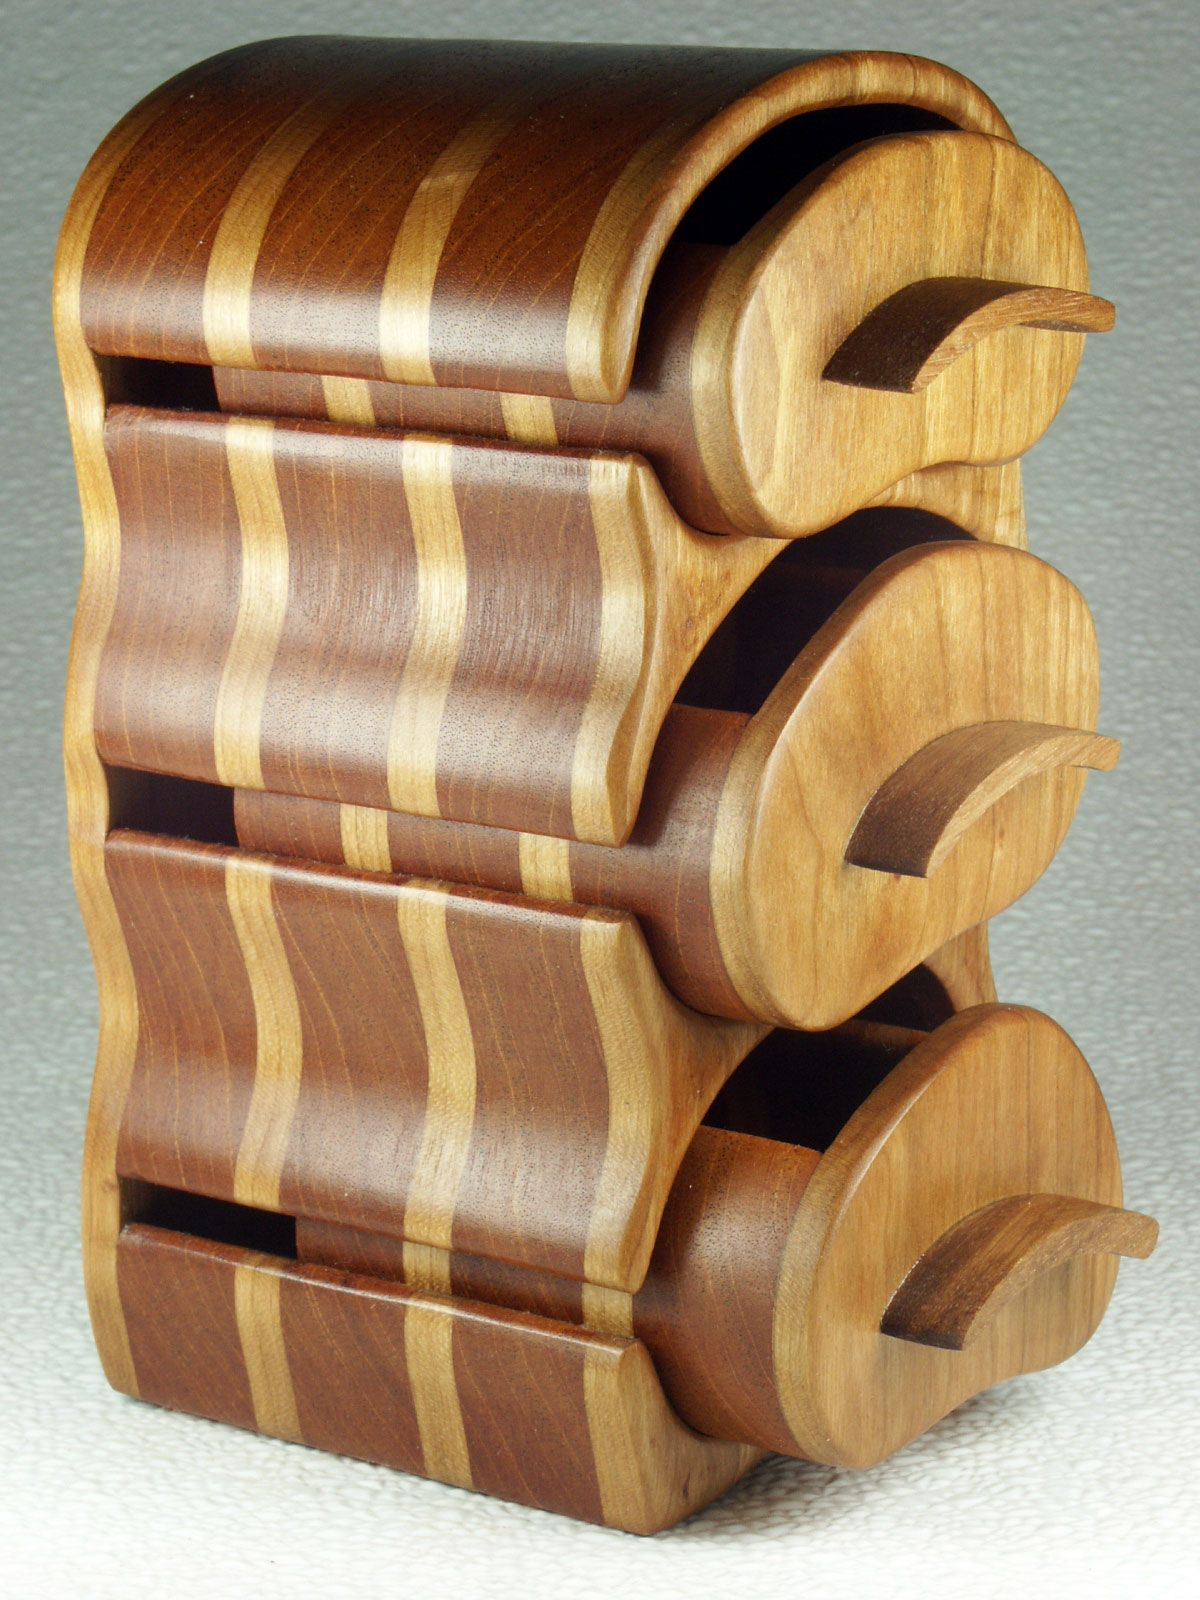 Some day I will attempt a bandsaw box.